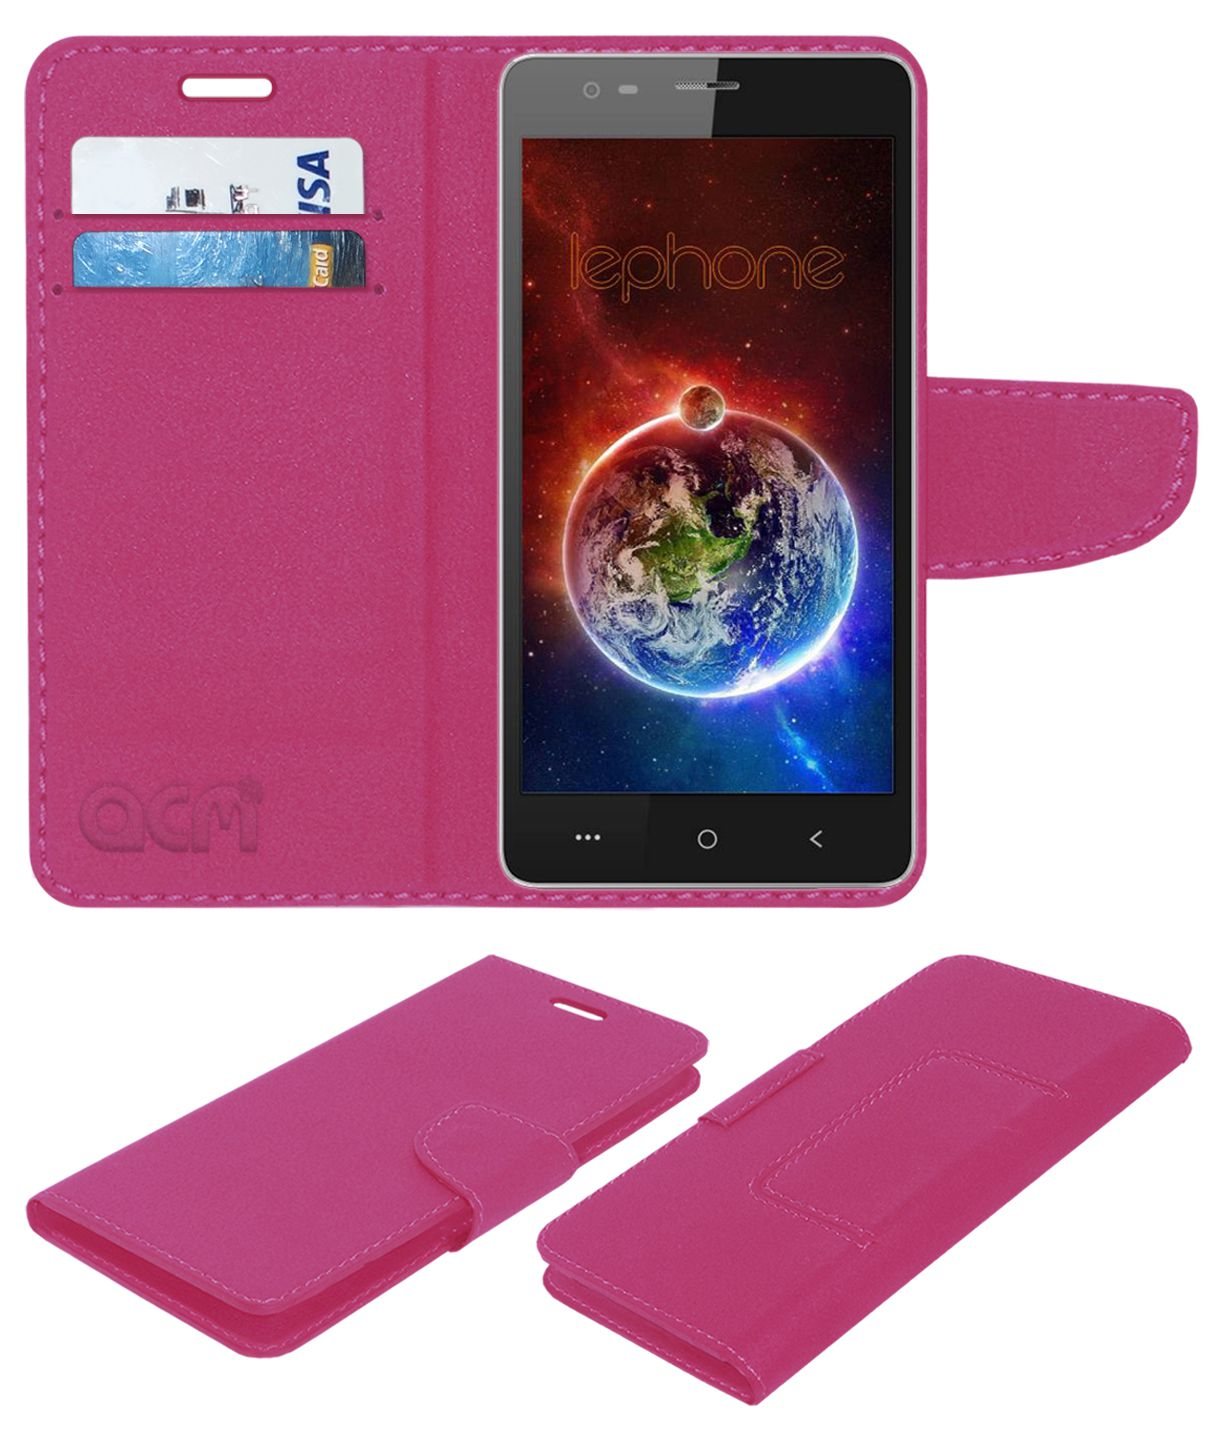 LEPHONE W7 Flip Cover by ACM - Pink